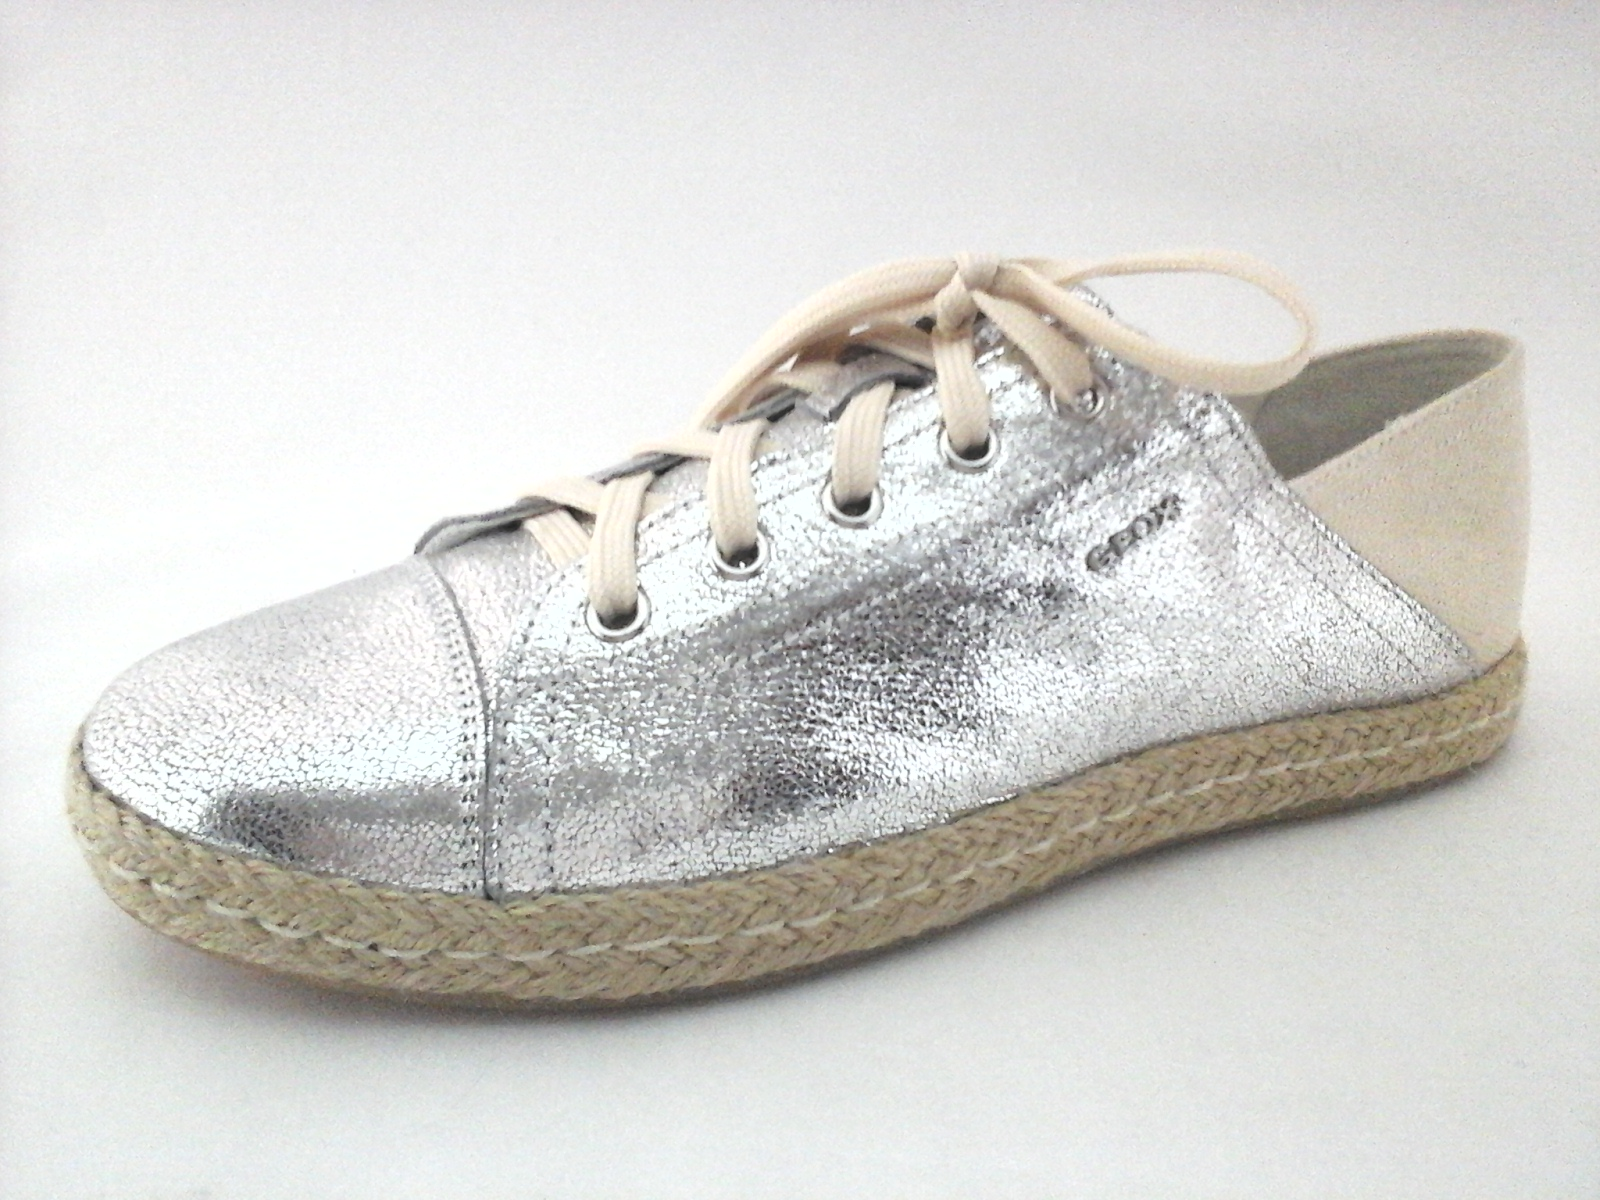 half off 7a234 816be Details about GEOX RESPIRA Shoes Silver Leather/Canvas Sneaker ESPADRILLES  Flats US 10/40 $195